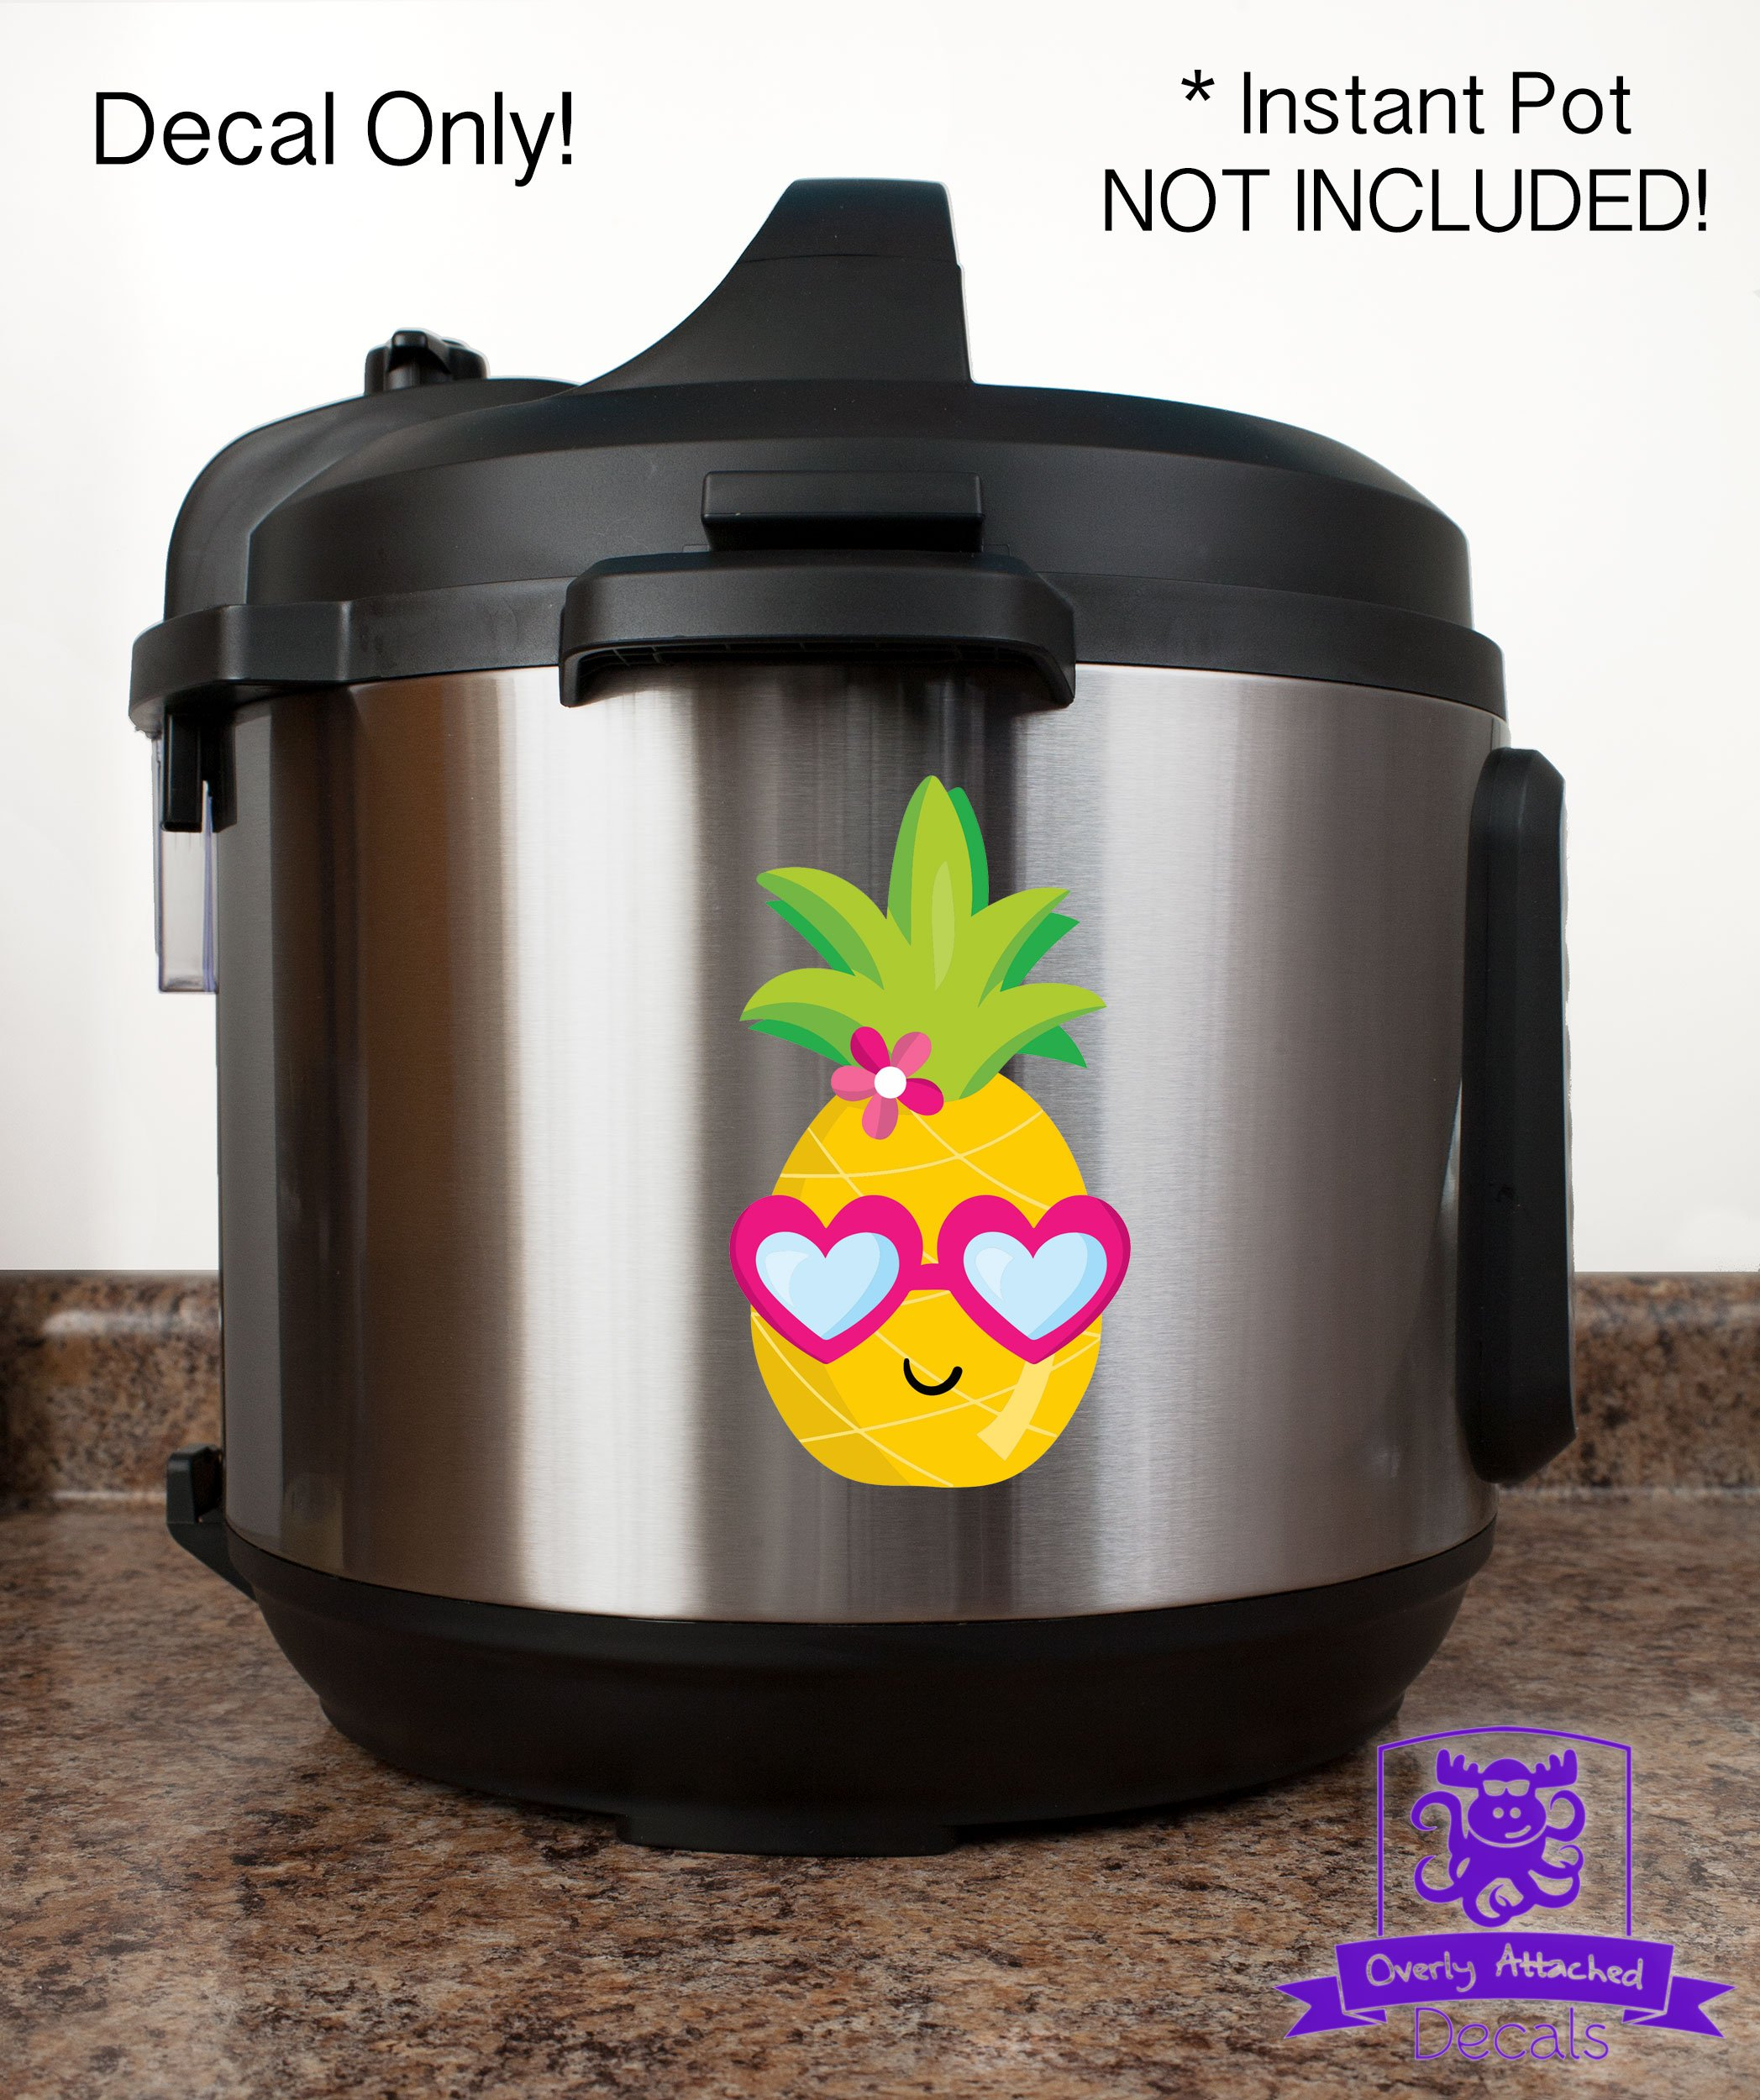 Cute Happy Pineapple Girl Head with Heart Glasses Vinyl Decal Wrap for Pressure Cooker - Full Color by Overly Attached Decals (Image #2)